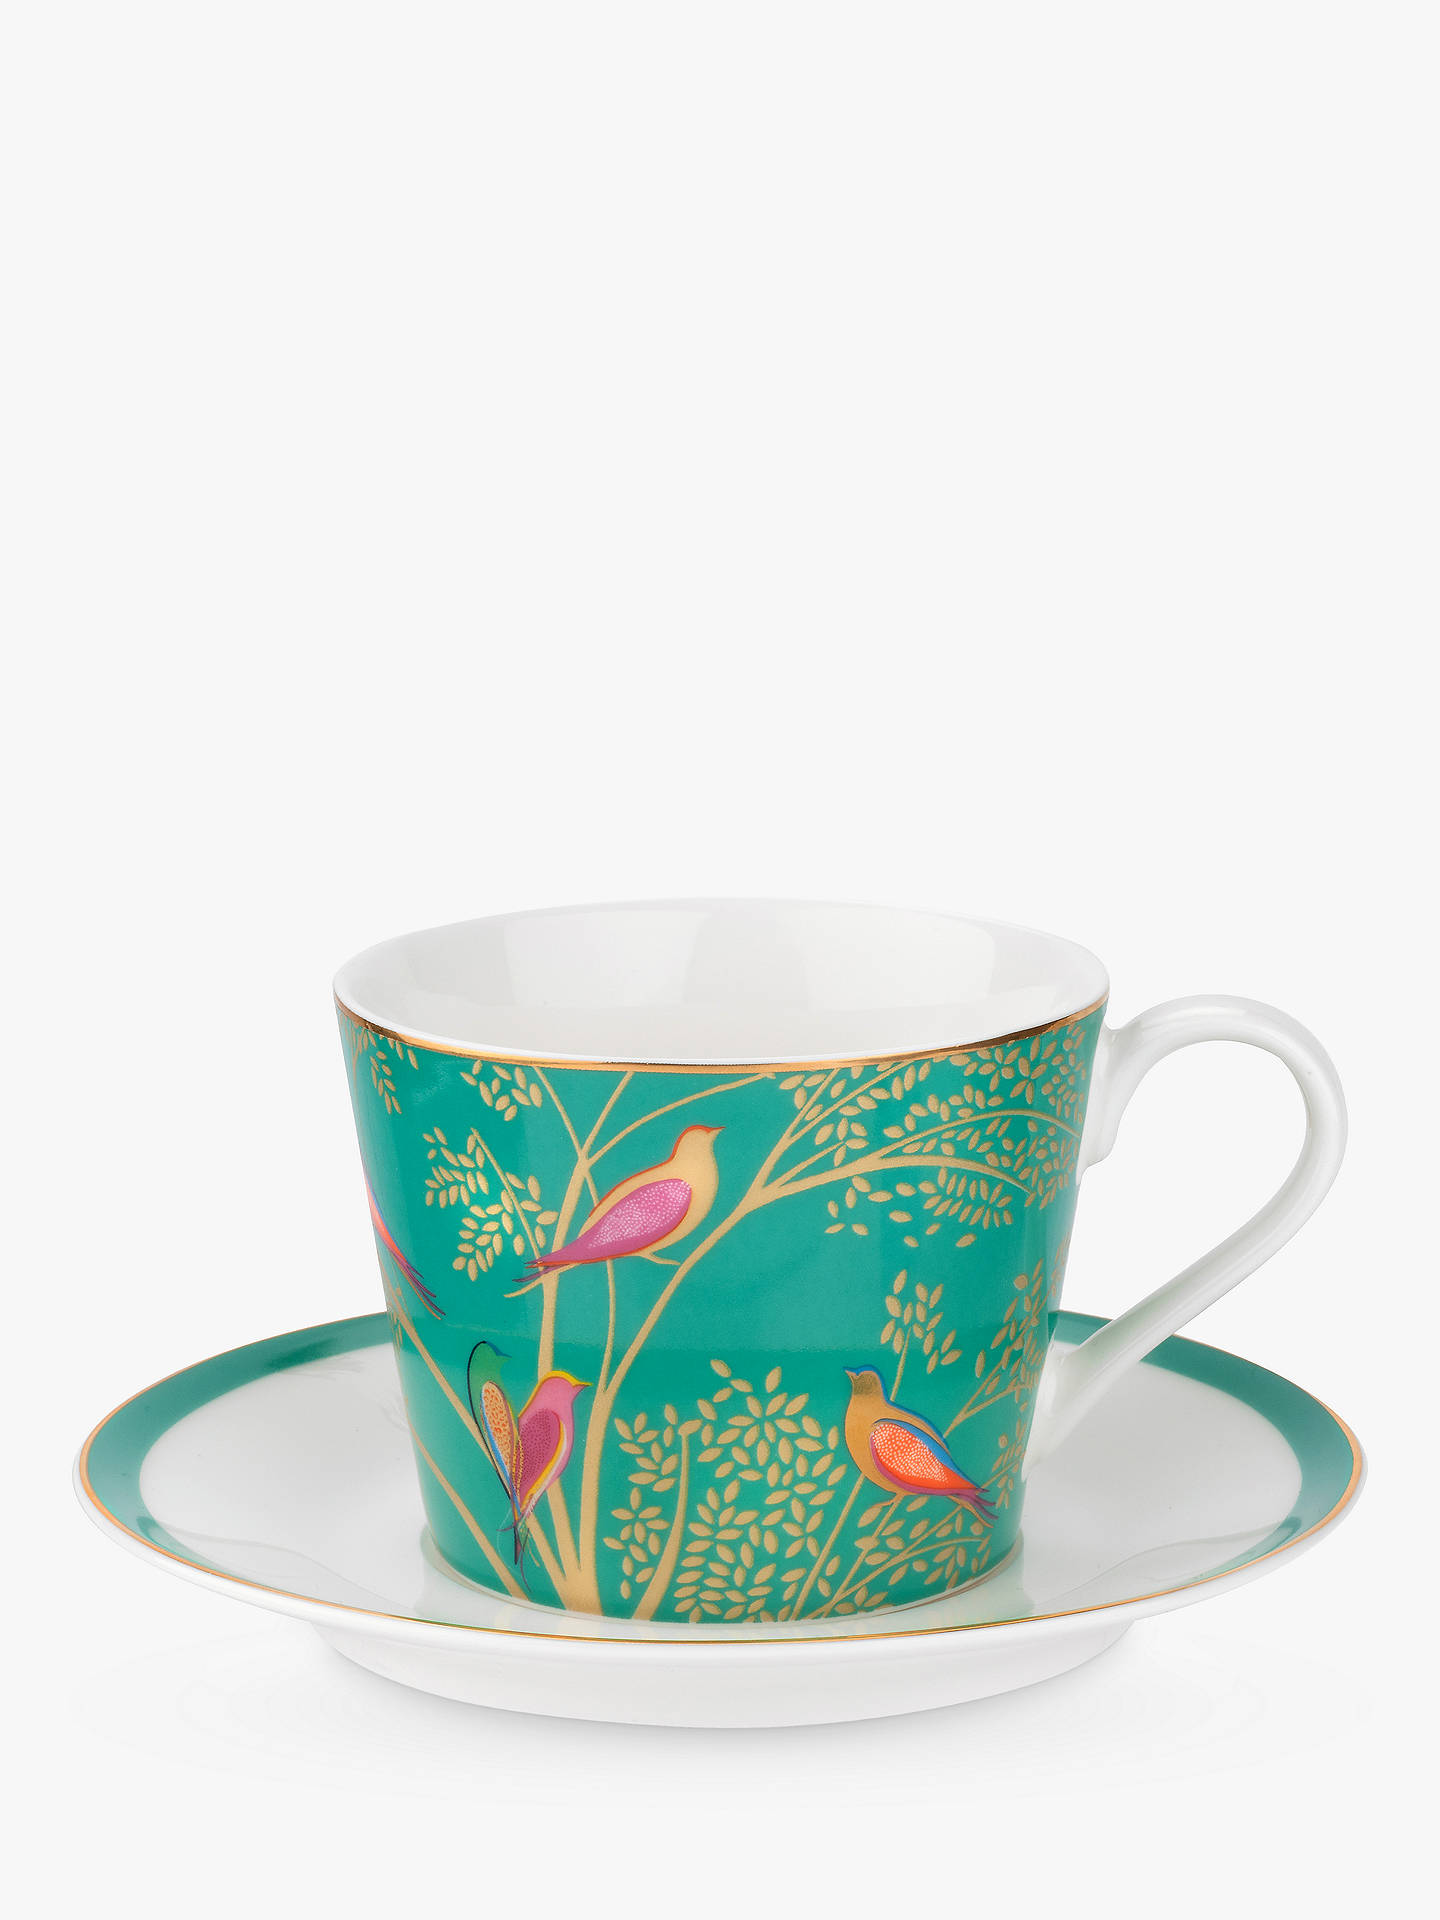 BuySara Miller Chelsea Collection Birds Cup and Saucer, 200ml, Green Online at johnlewis.com